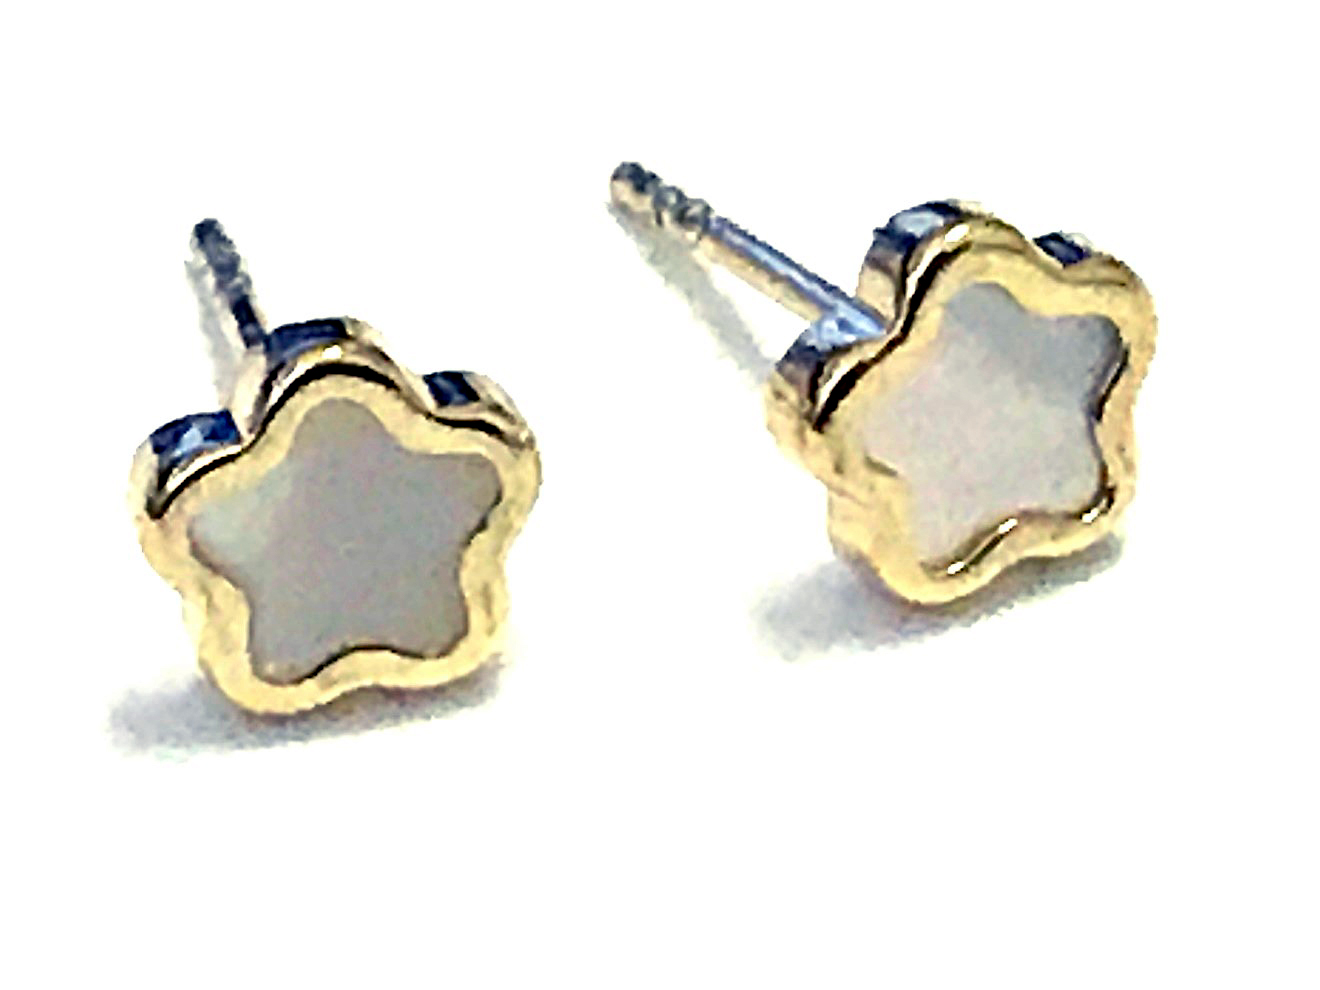 Flower earrings - 10K yelloe gold & mother-of-pearl